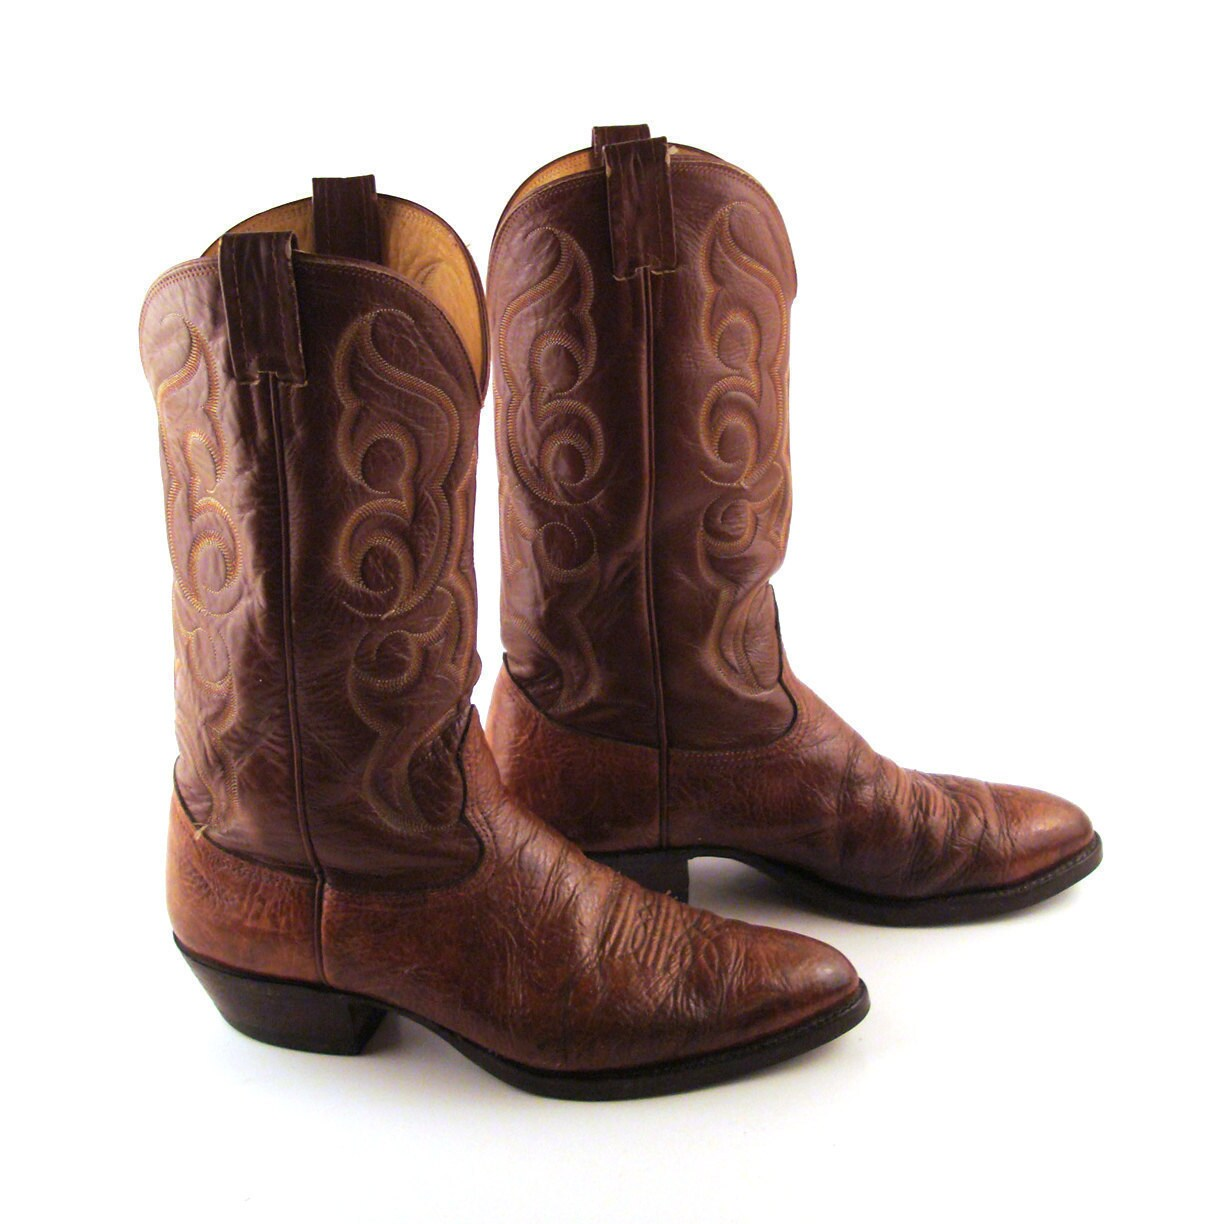 Cache 1 image 500x 9df78eab33525d08d6e5fb8d27136e95 a r arena replique - College Themed Boots Close Embed This Video More Videos 3 Of 9 Sports Fans Want More Than Just Jerseys And Big Foam Fingers Now They Re Buying Cowboy